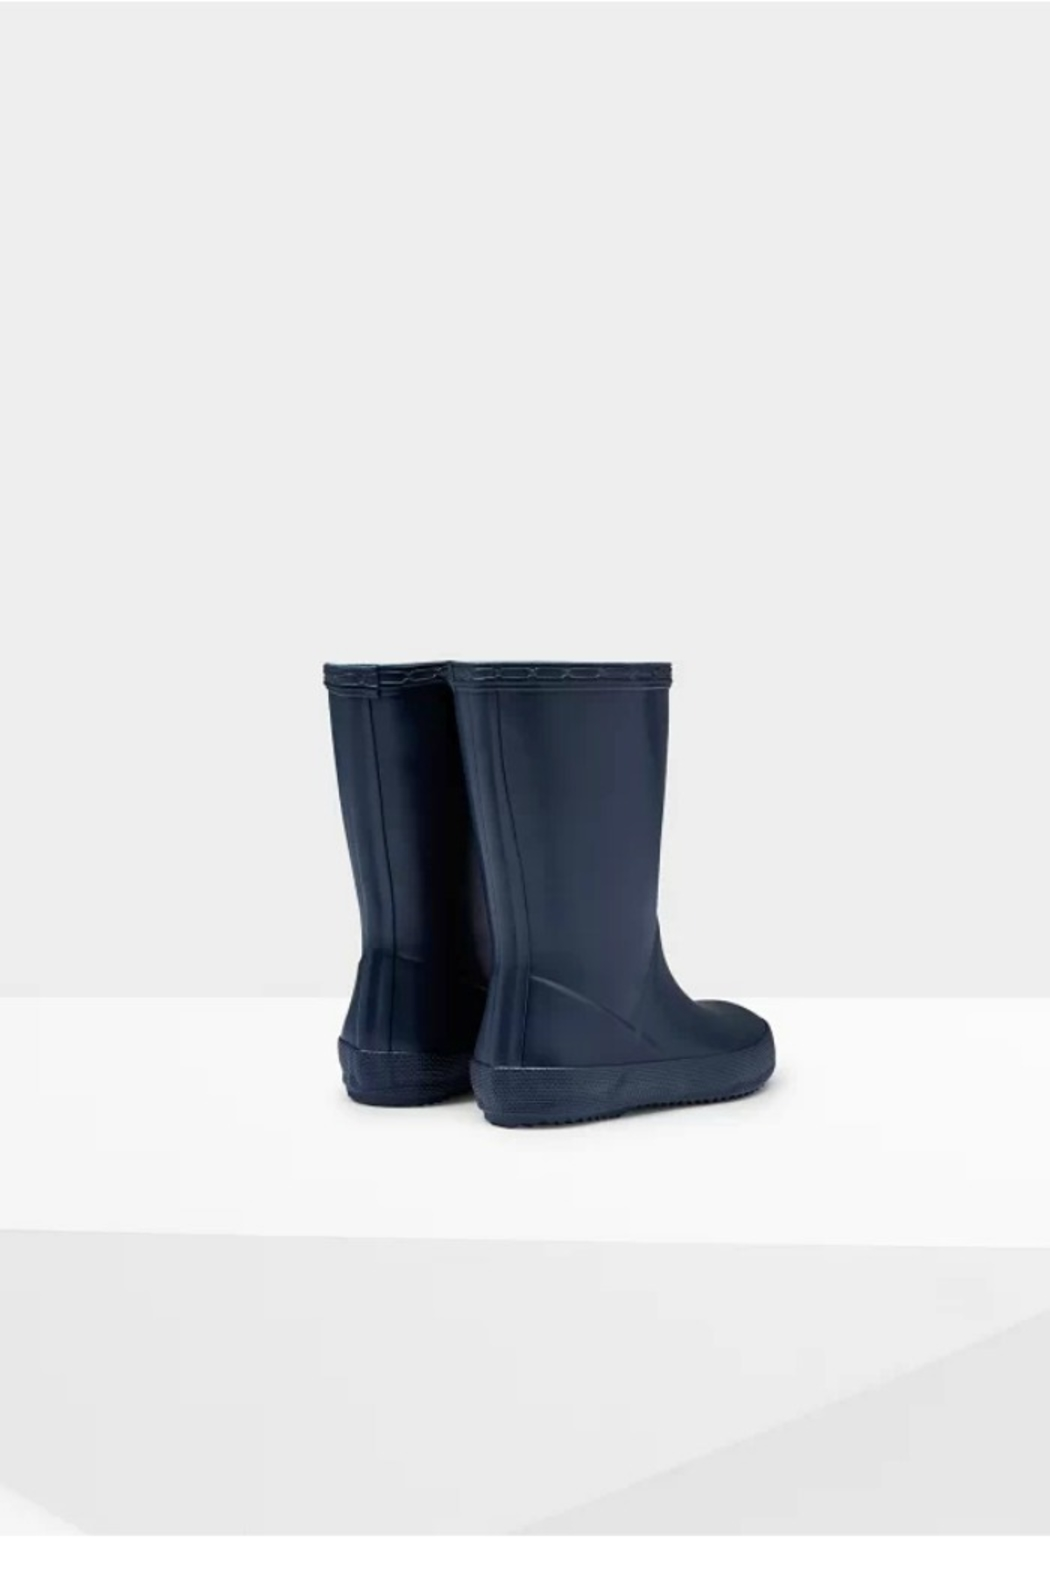 Hunter Boots HUNTER KIDS FIRST CLASSIC - Side Cropped Image